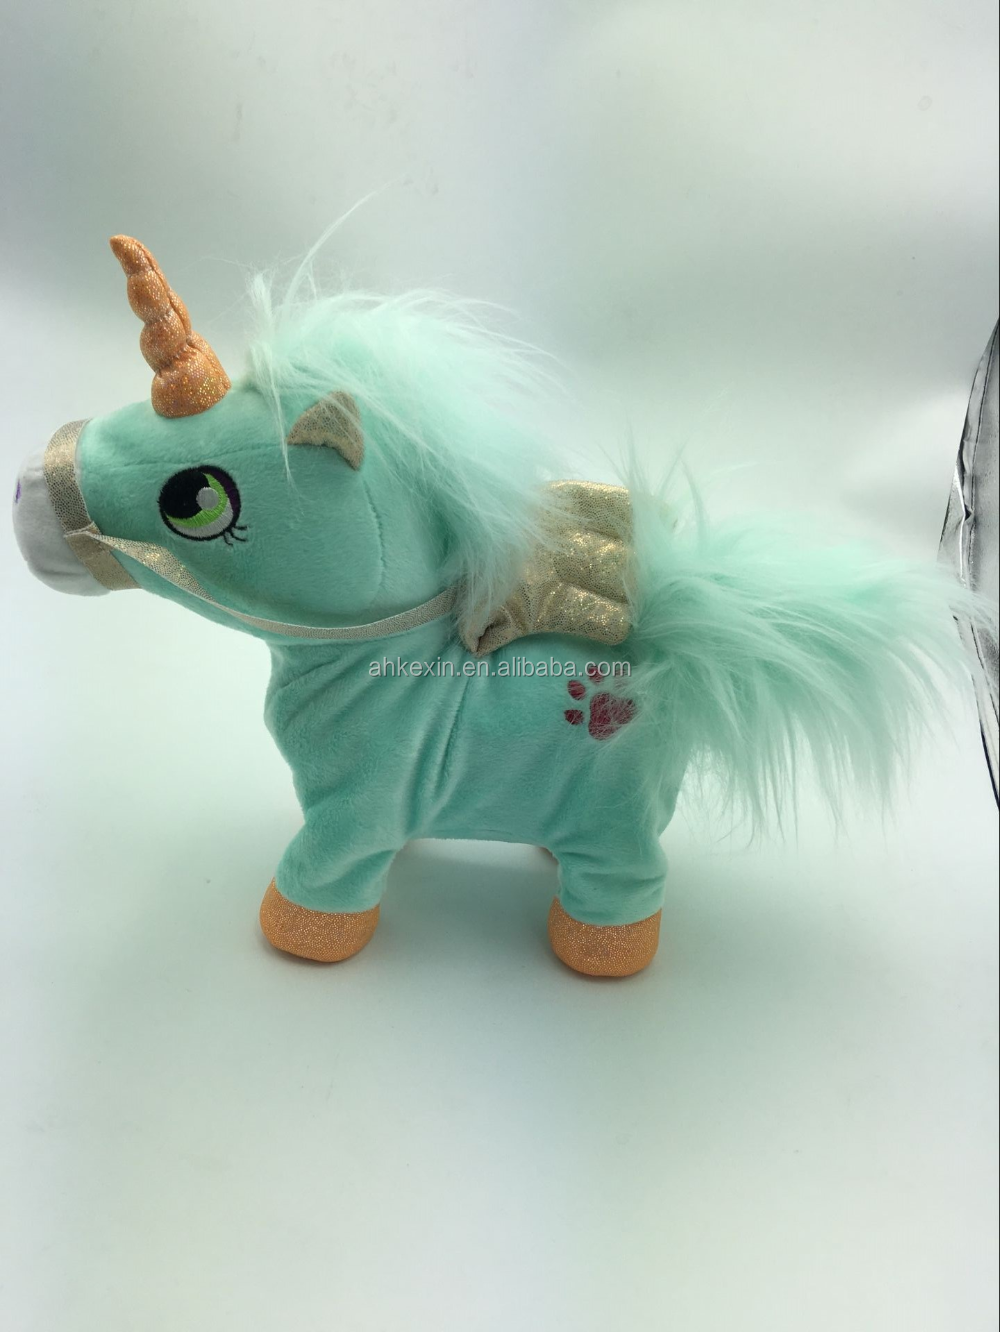 2016 New Design Cute Plush Standing Green Horse Stuffed Animal Toy